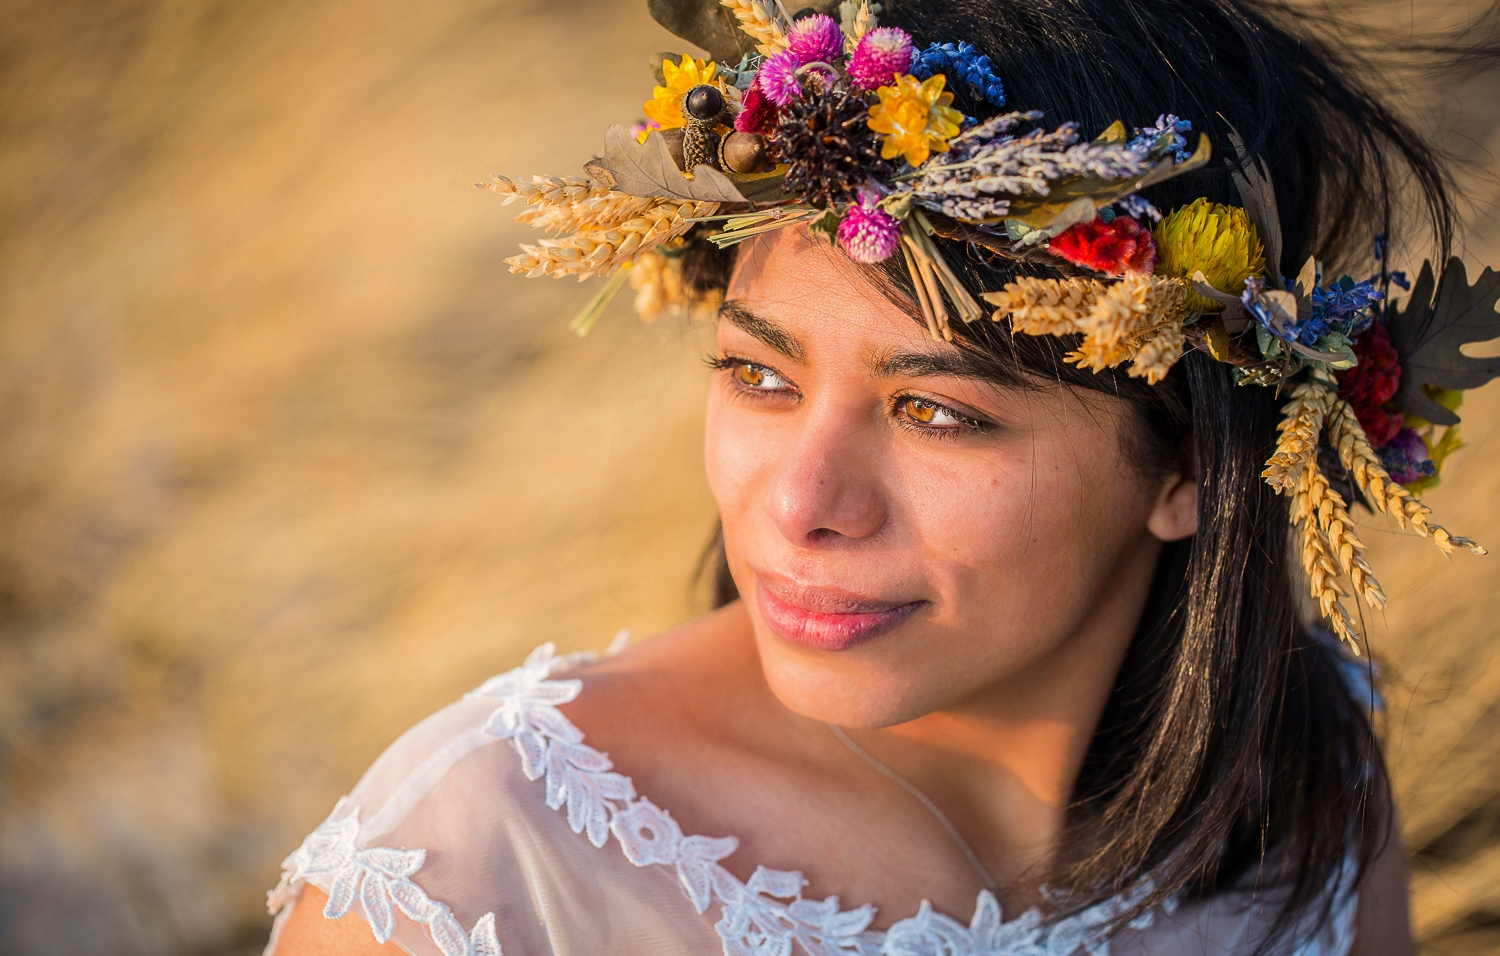 A beautiful bride with a flower crown looks off into the sunset on her wedding day.